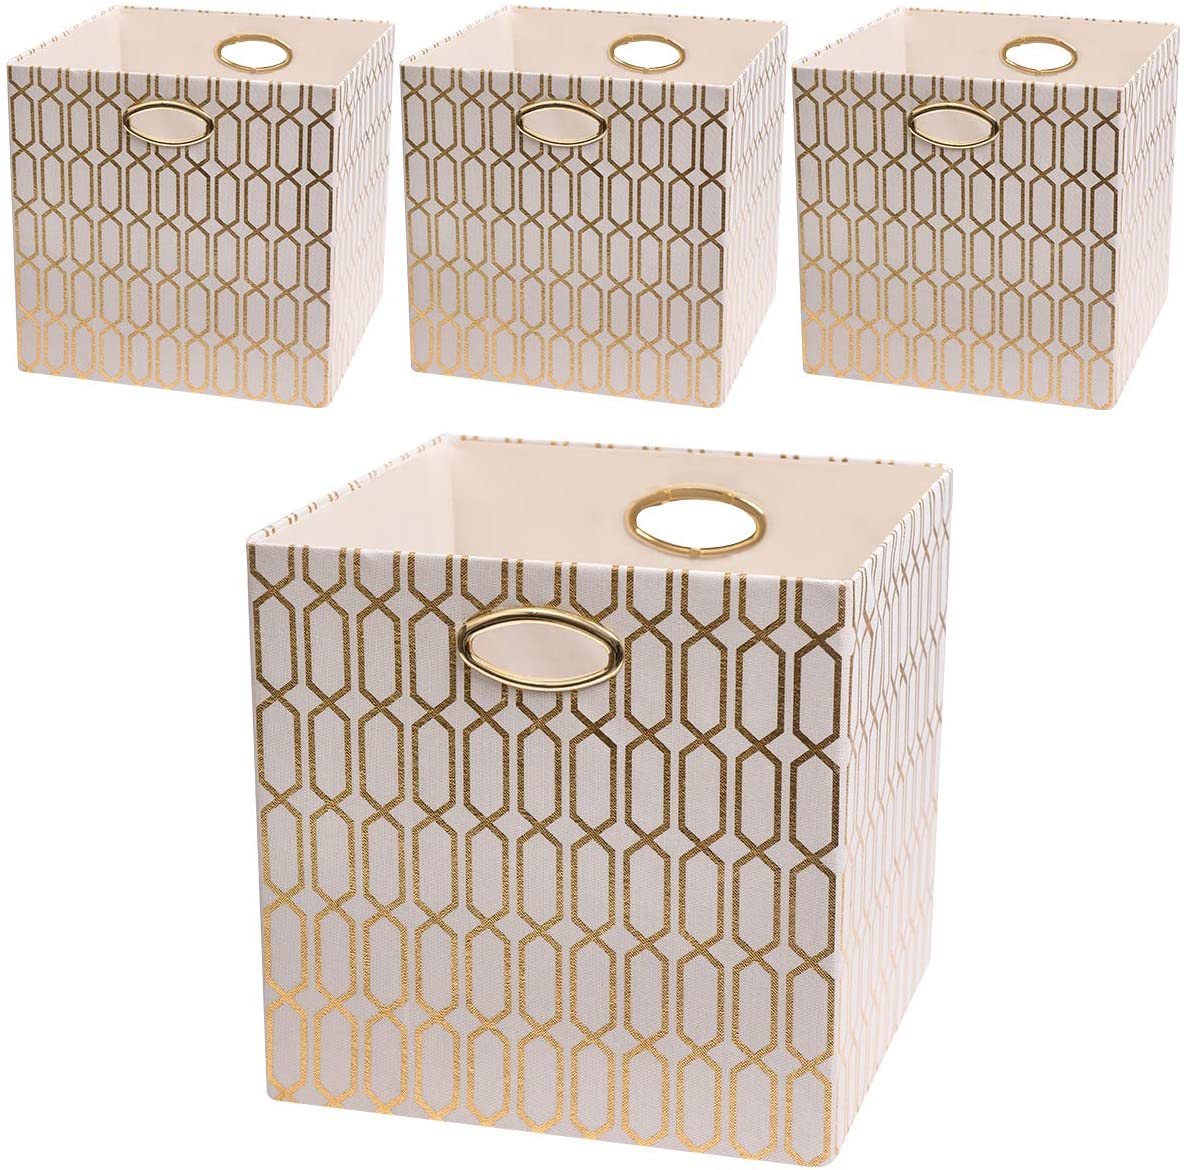 Posprica Foldable Storage Bins - 13x13 Fabric Storage Cubes Basket Boxes Containers Drawers (4pcs, Cream)